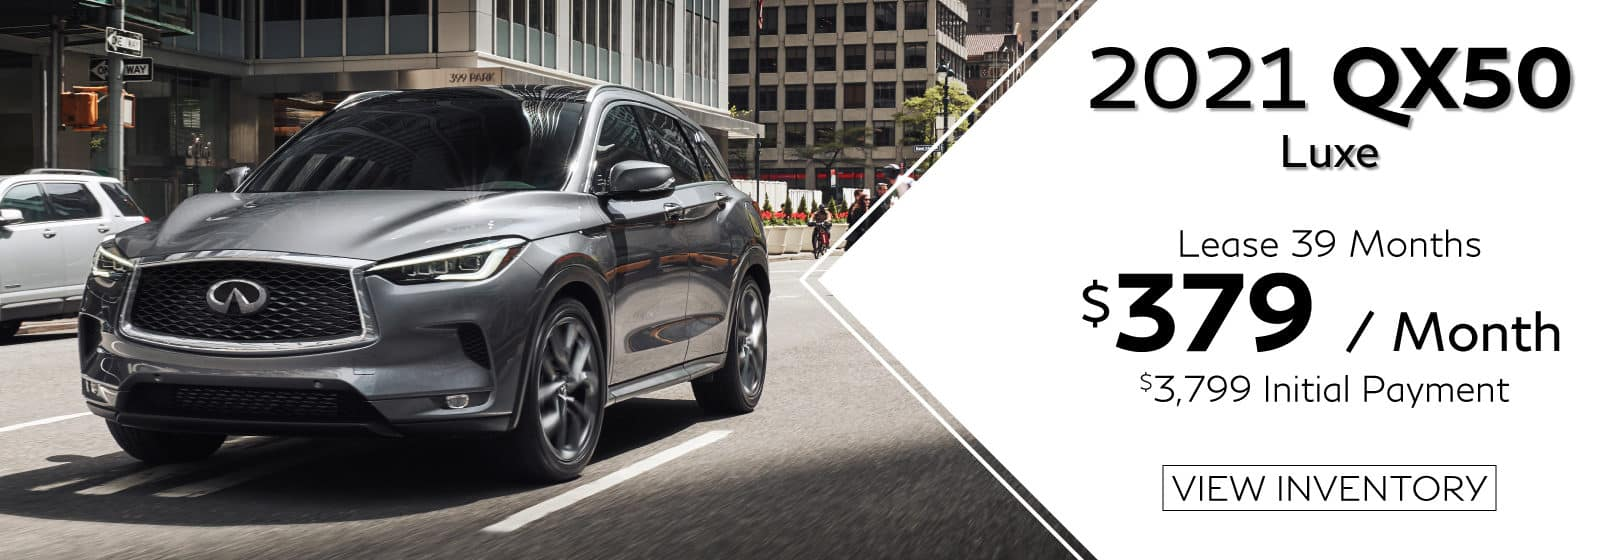 VIN 3PCAJ5BAXMF107598. Well-qualified lessees lease a new 2021 QX50 LUXE in retailer stock for $379/Month for 39 months. $3,799 initial payment excludes taxes, title, and license. $3,799 due at lease signing (includes down payment). Offer valid only when financed through INFINITI Financial Services. Subject to residency restrictions. $42,525 MSRP includes destination and handling charge. Net capitalized cost of $34,548 includes a $700 non-refundable acquisition fee. Retailer contribution may affect actual price set by retailer. Monthly payments total $14,781 at lease end, purchase for $23,814, plus purchase option fee up to $300 (except KS & WI), plus tax, or pay excess wear & use plus $0.25 per mile for mileage over 10,000 miles per year. Disposition fee due at lease end. No security deposit required. Must take delivery from new retailer stock. Ends 02/01/2021. Photo for illustration purposes only.